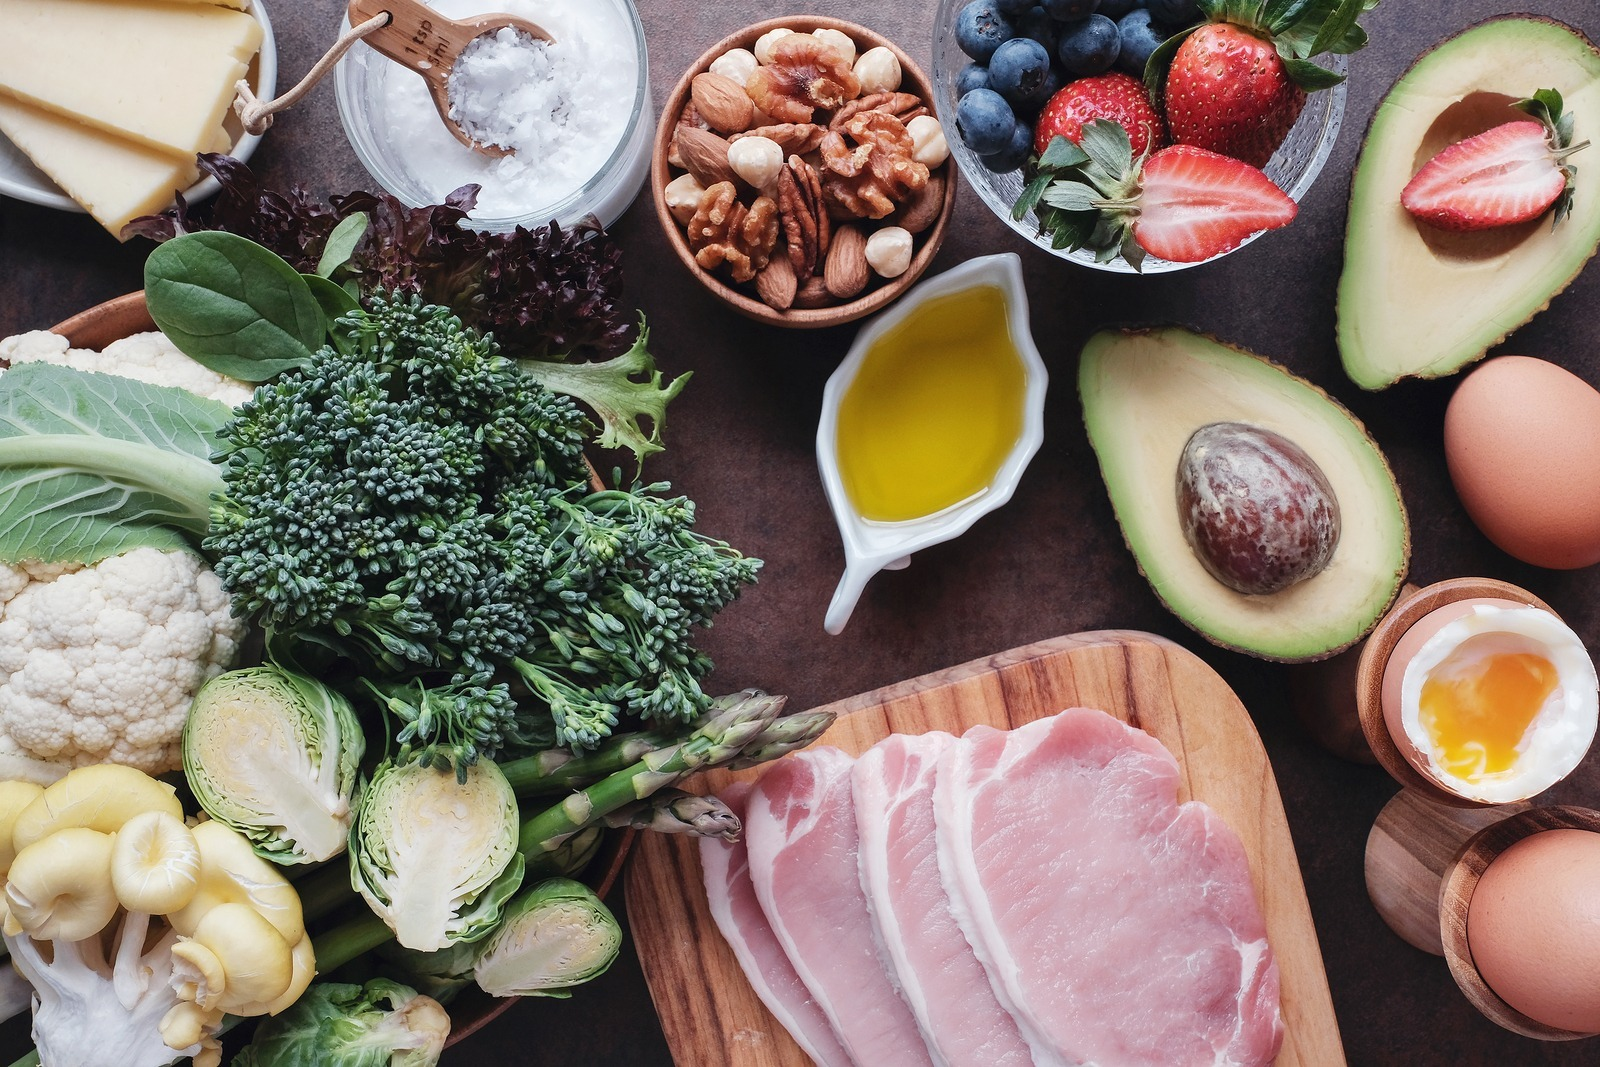 Keto Diet Results: How Quickly Will I Lose Weight on Keto?